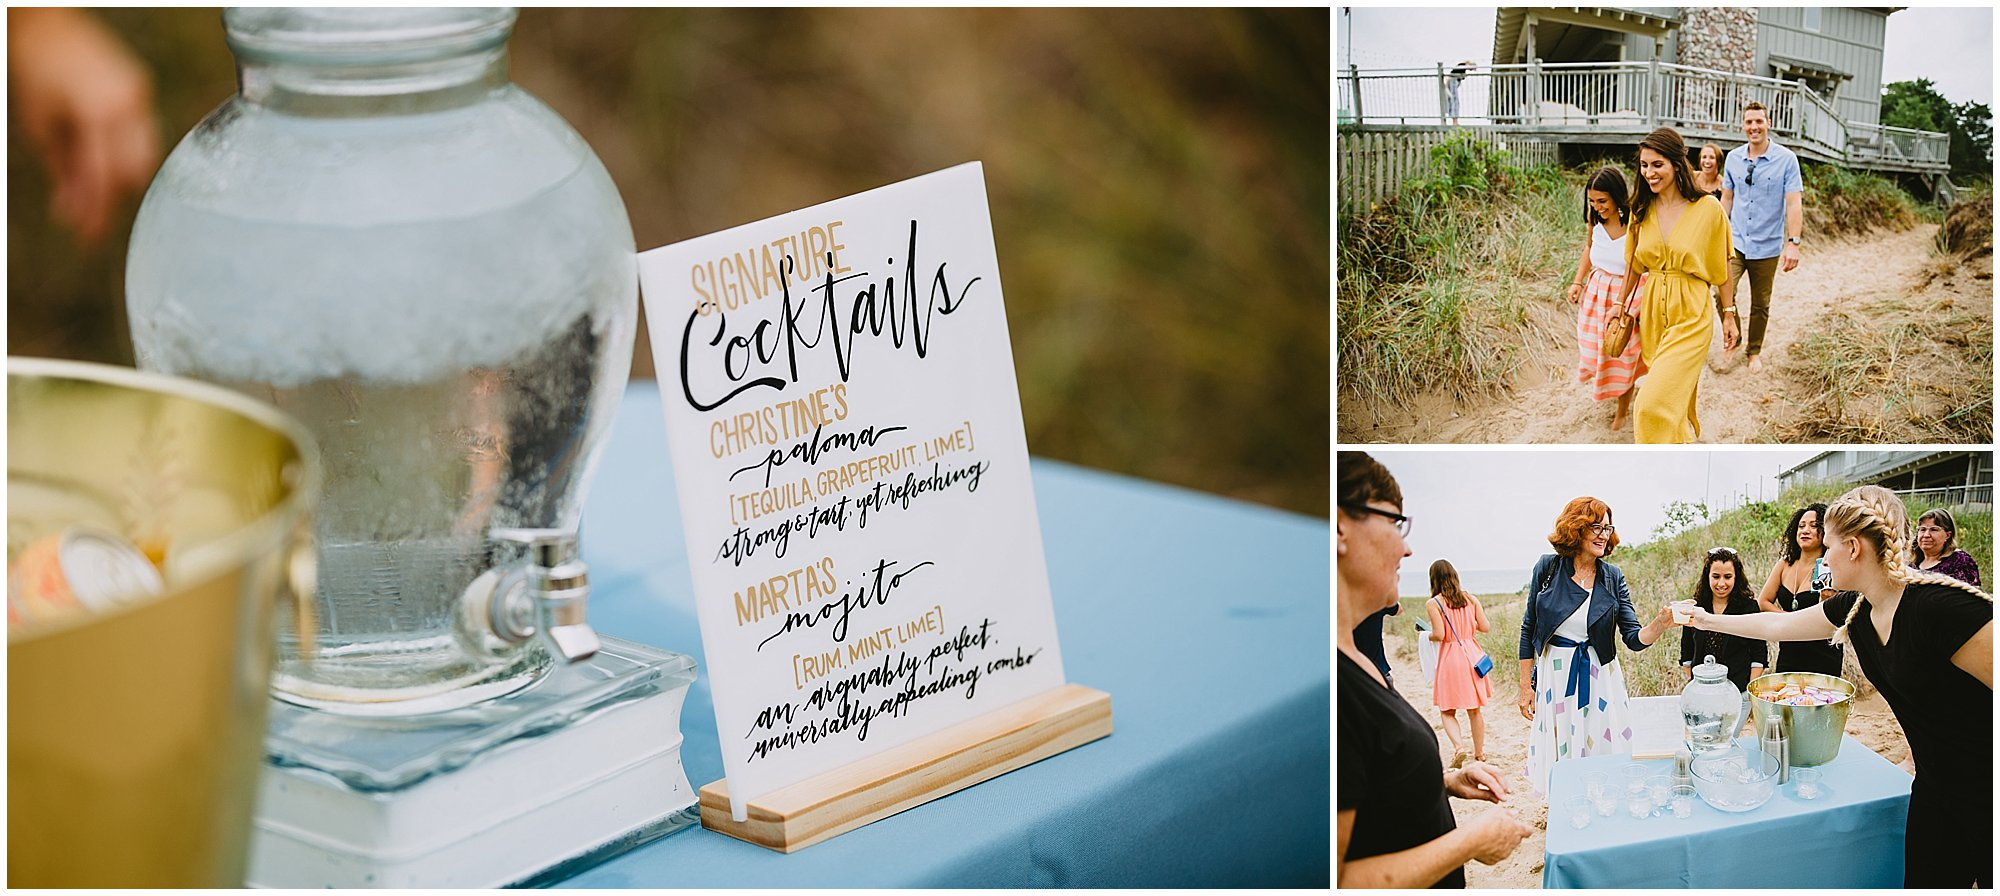 wedding cocktails hand lettered sign